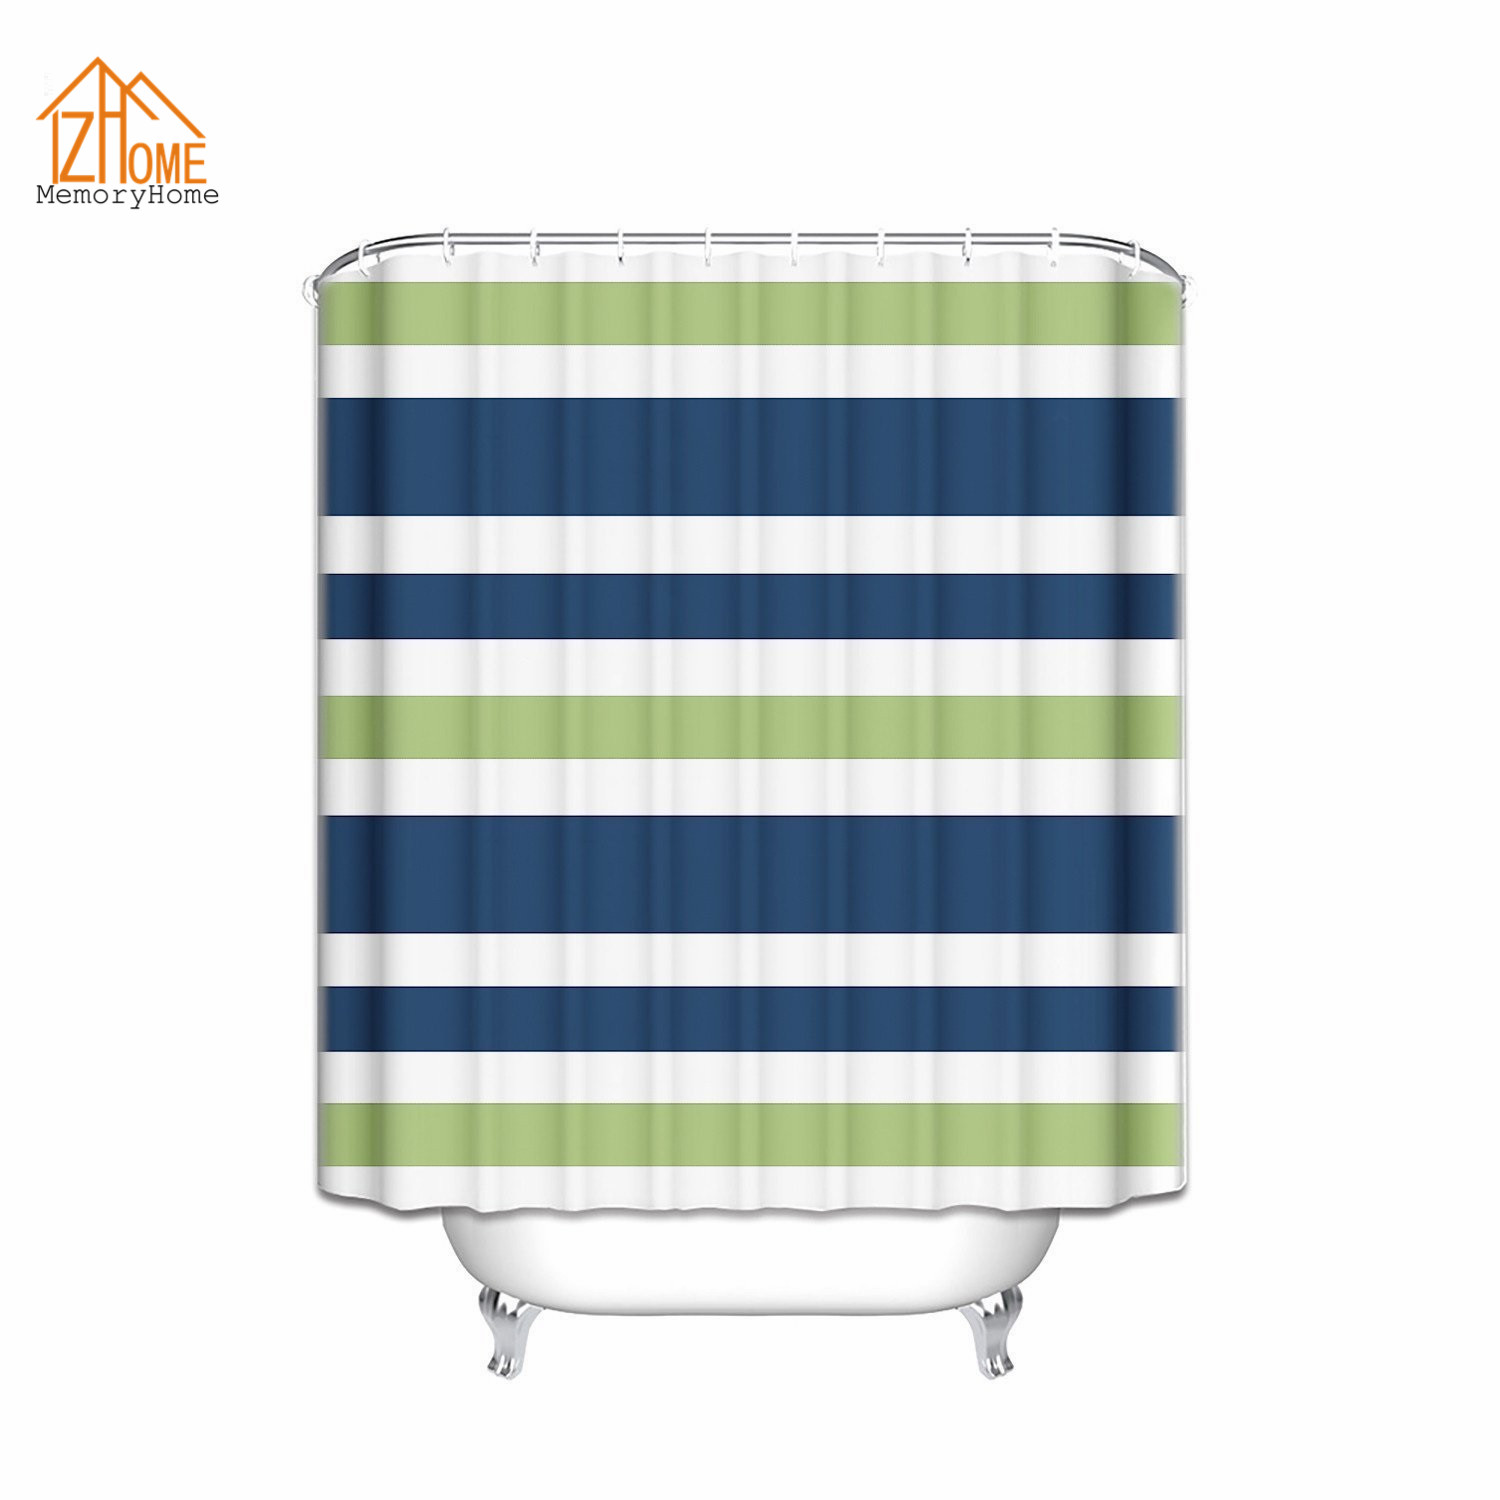 Compare Prices on Green Shower Curtain- Online Shopping/Buy Low ...